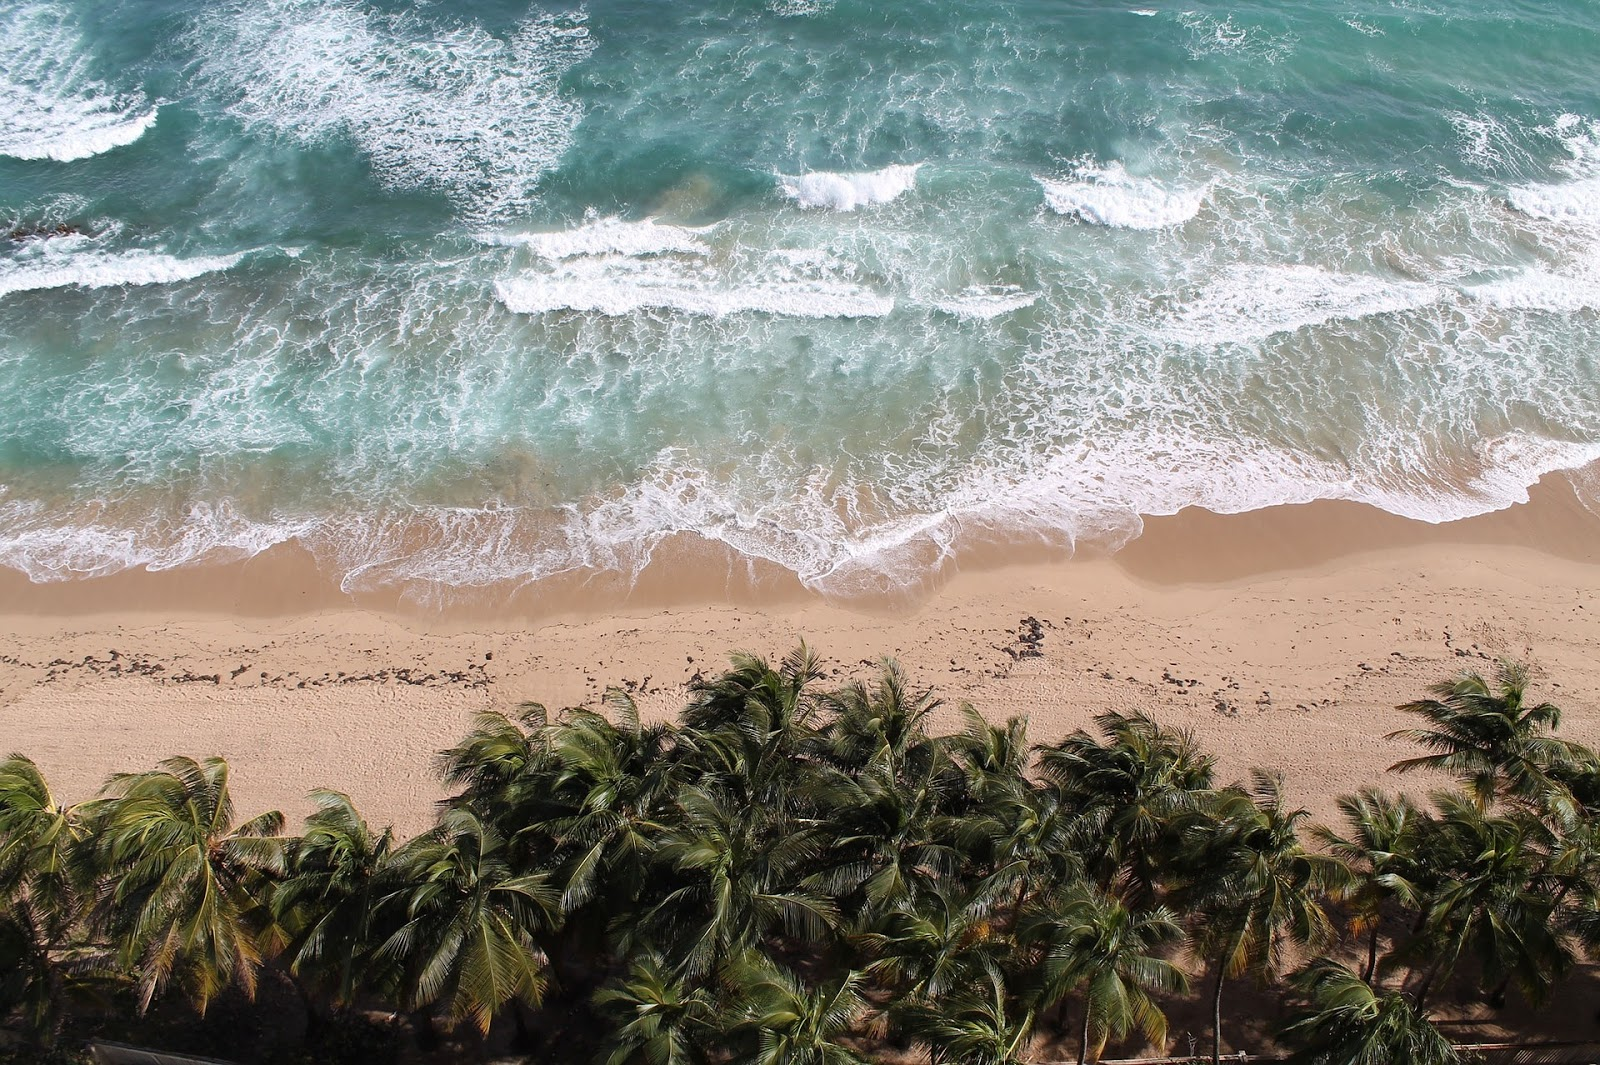 Surfing in Kikita Beach is one of the fun things to do in Puerto Rico